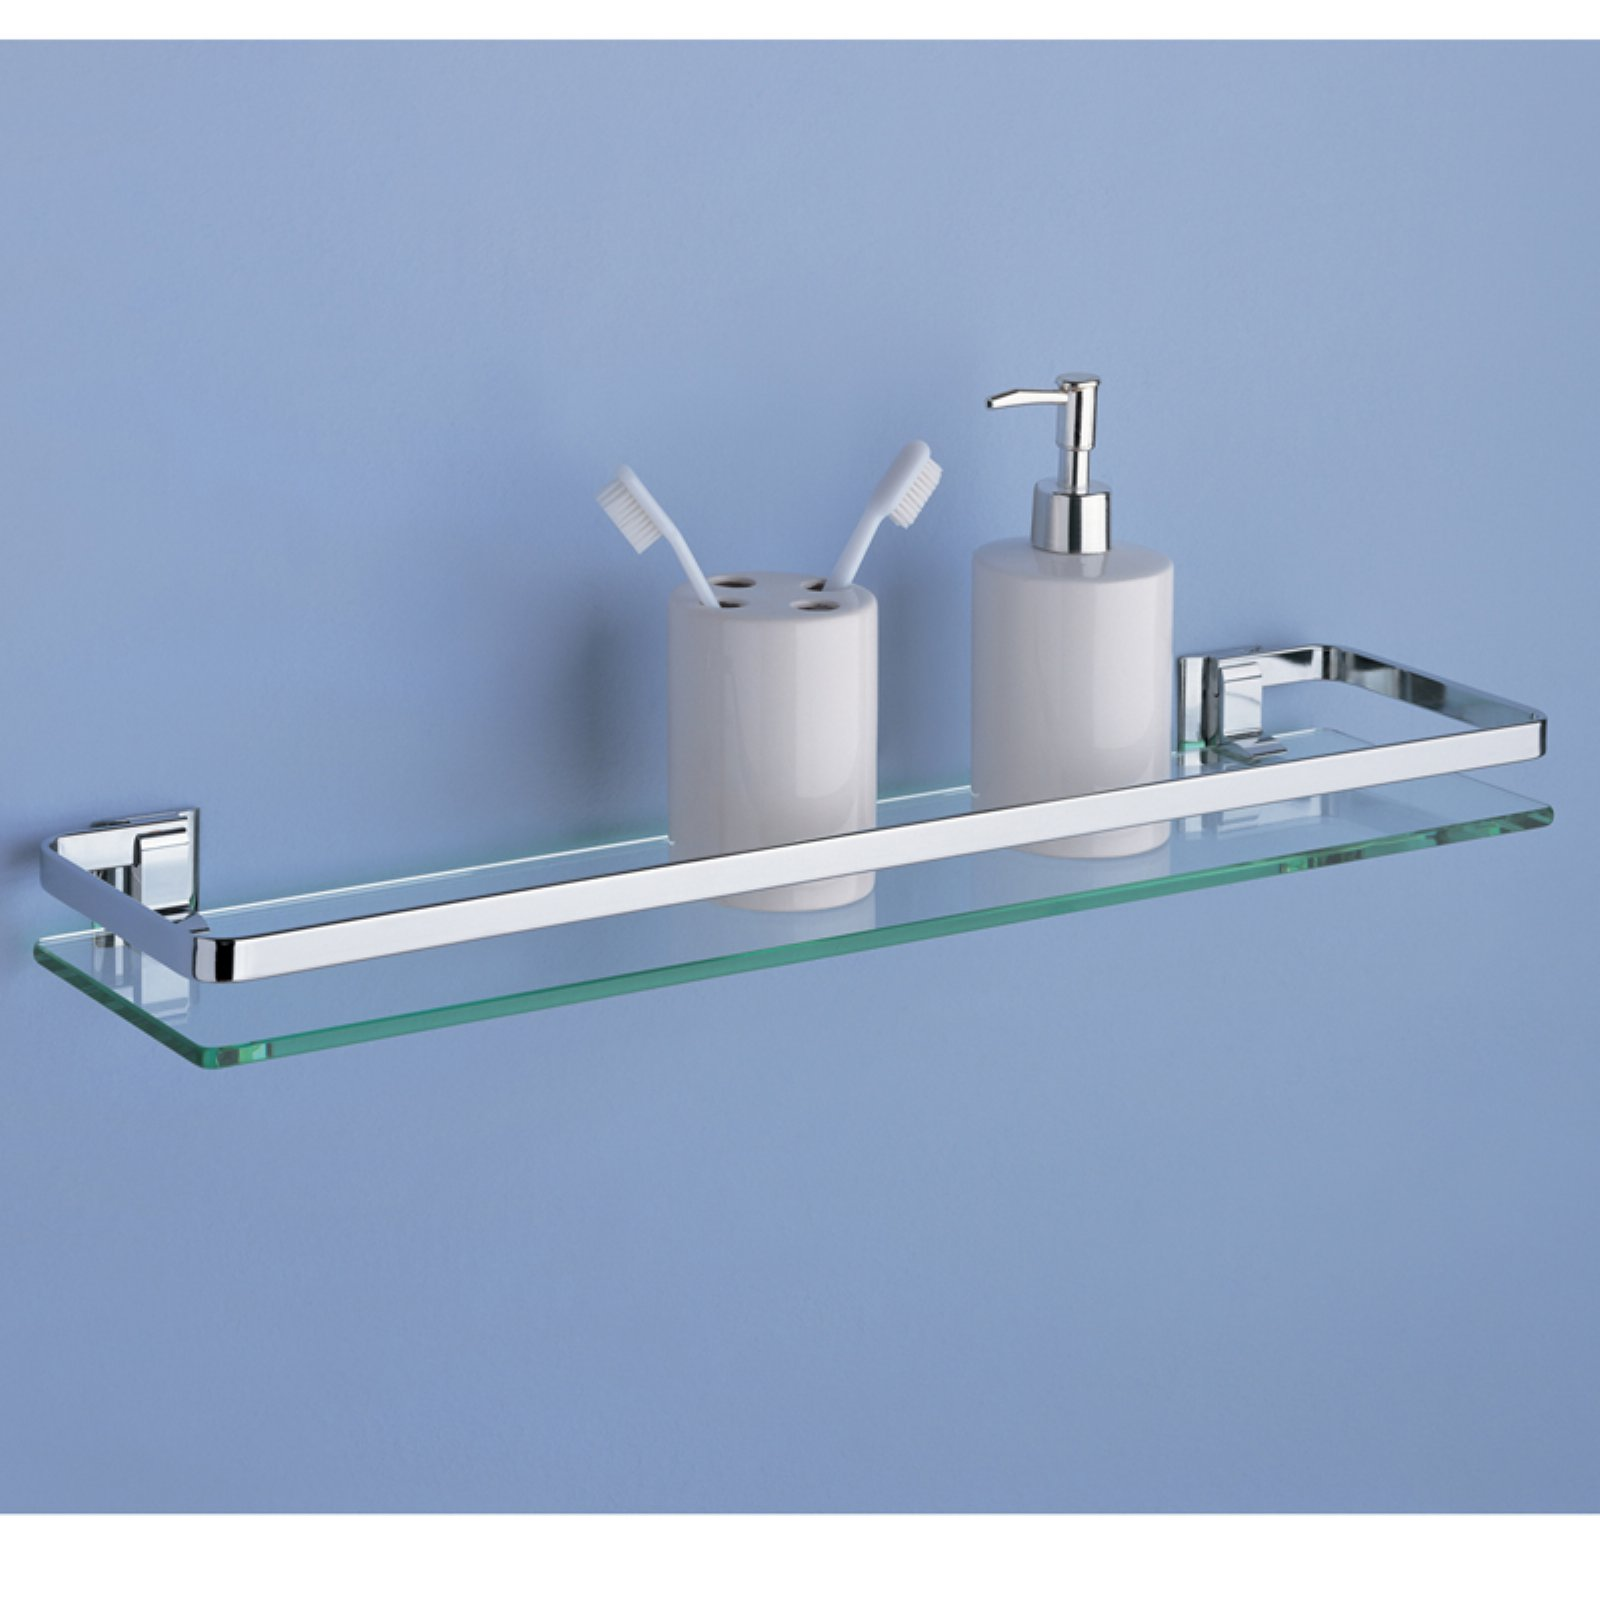 Glass Shelf with Chrome Finish and Rail - Walmart.com